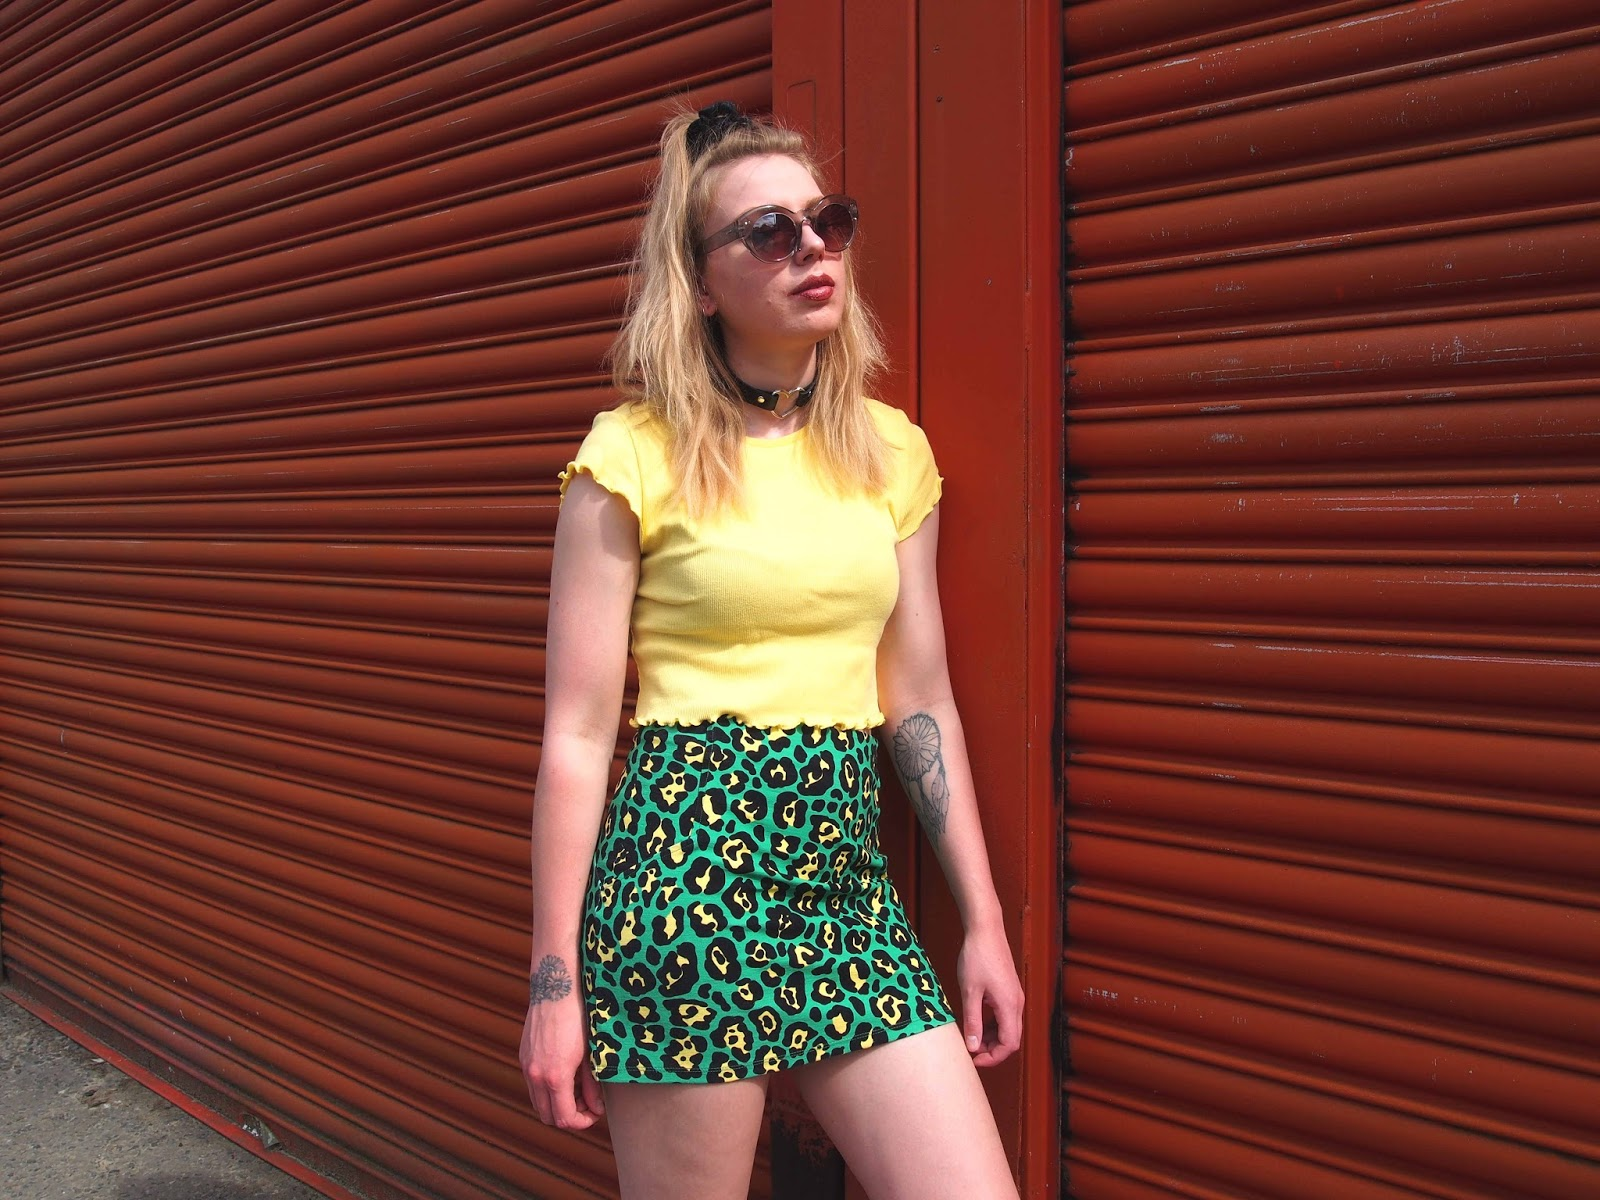 grunge 90's fashion style outfit ootd, summer casual alternative unique outfit, colourful leopard print bodycon skirt, lettuce frill trim 90's crop top, heart o ring choker, half up hair